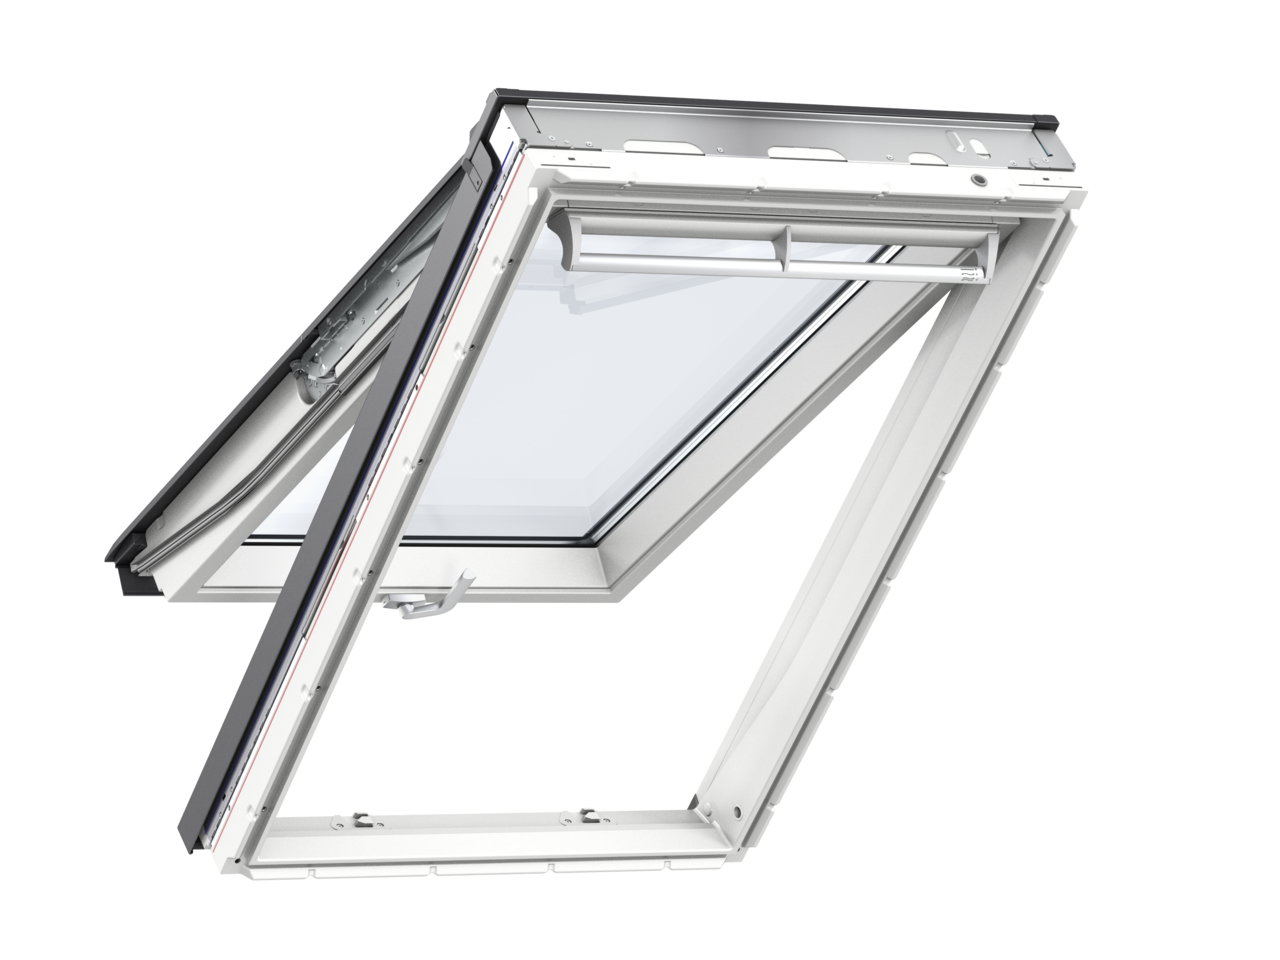 Velux GPU SK06 1140 x 1180mm Top Hung Standard 70Pane Roof Window - White Polyurethane